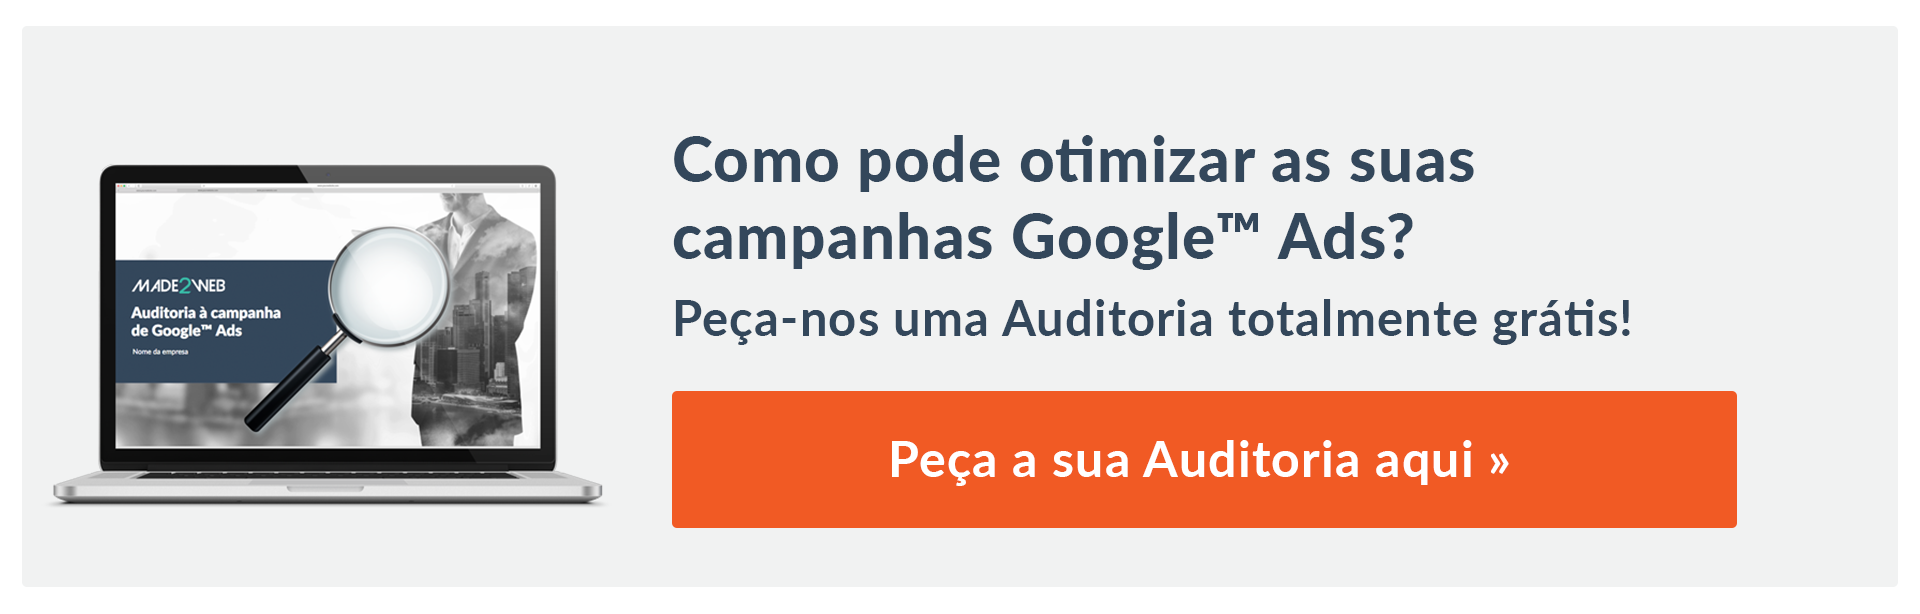 campanhas-adwords-auditoria